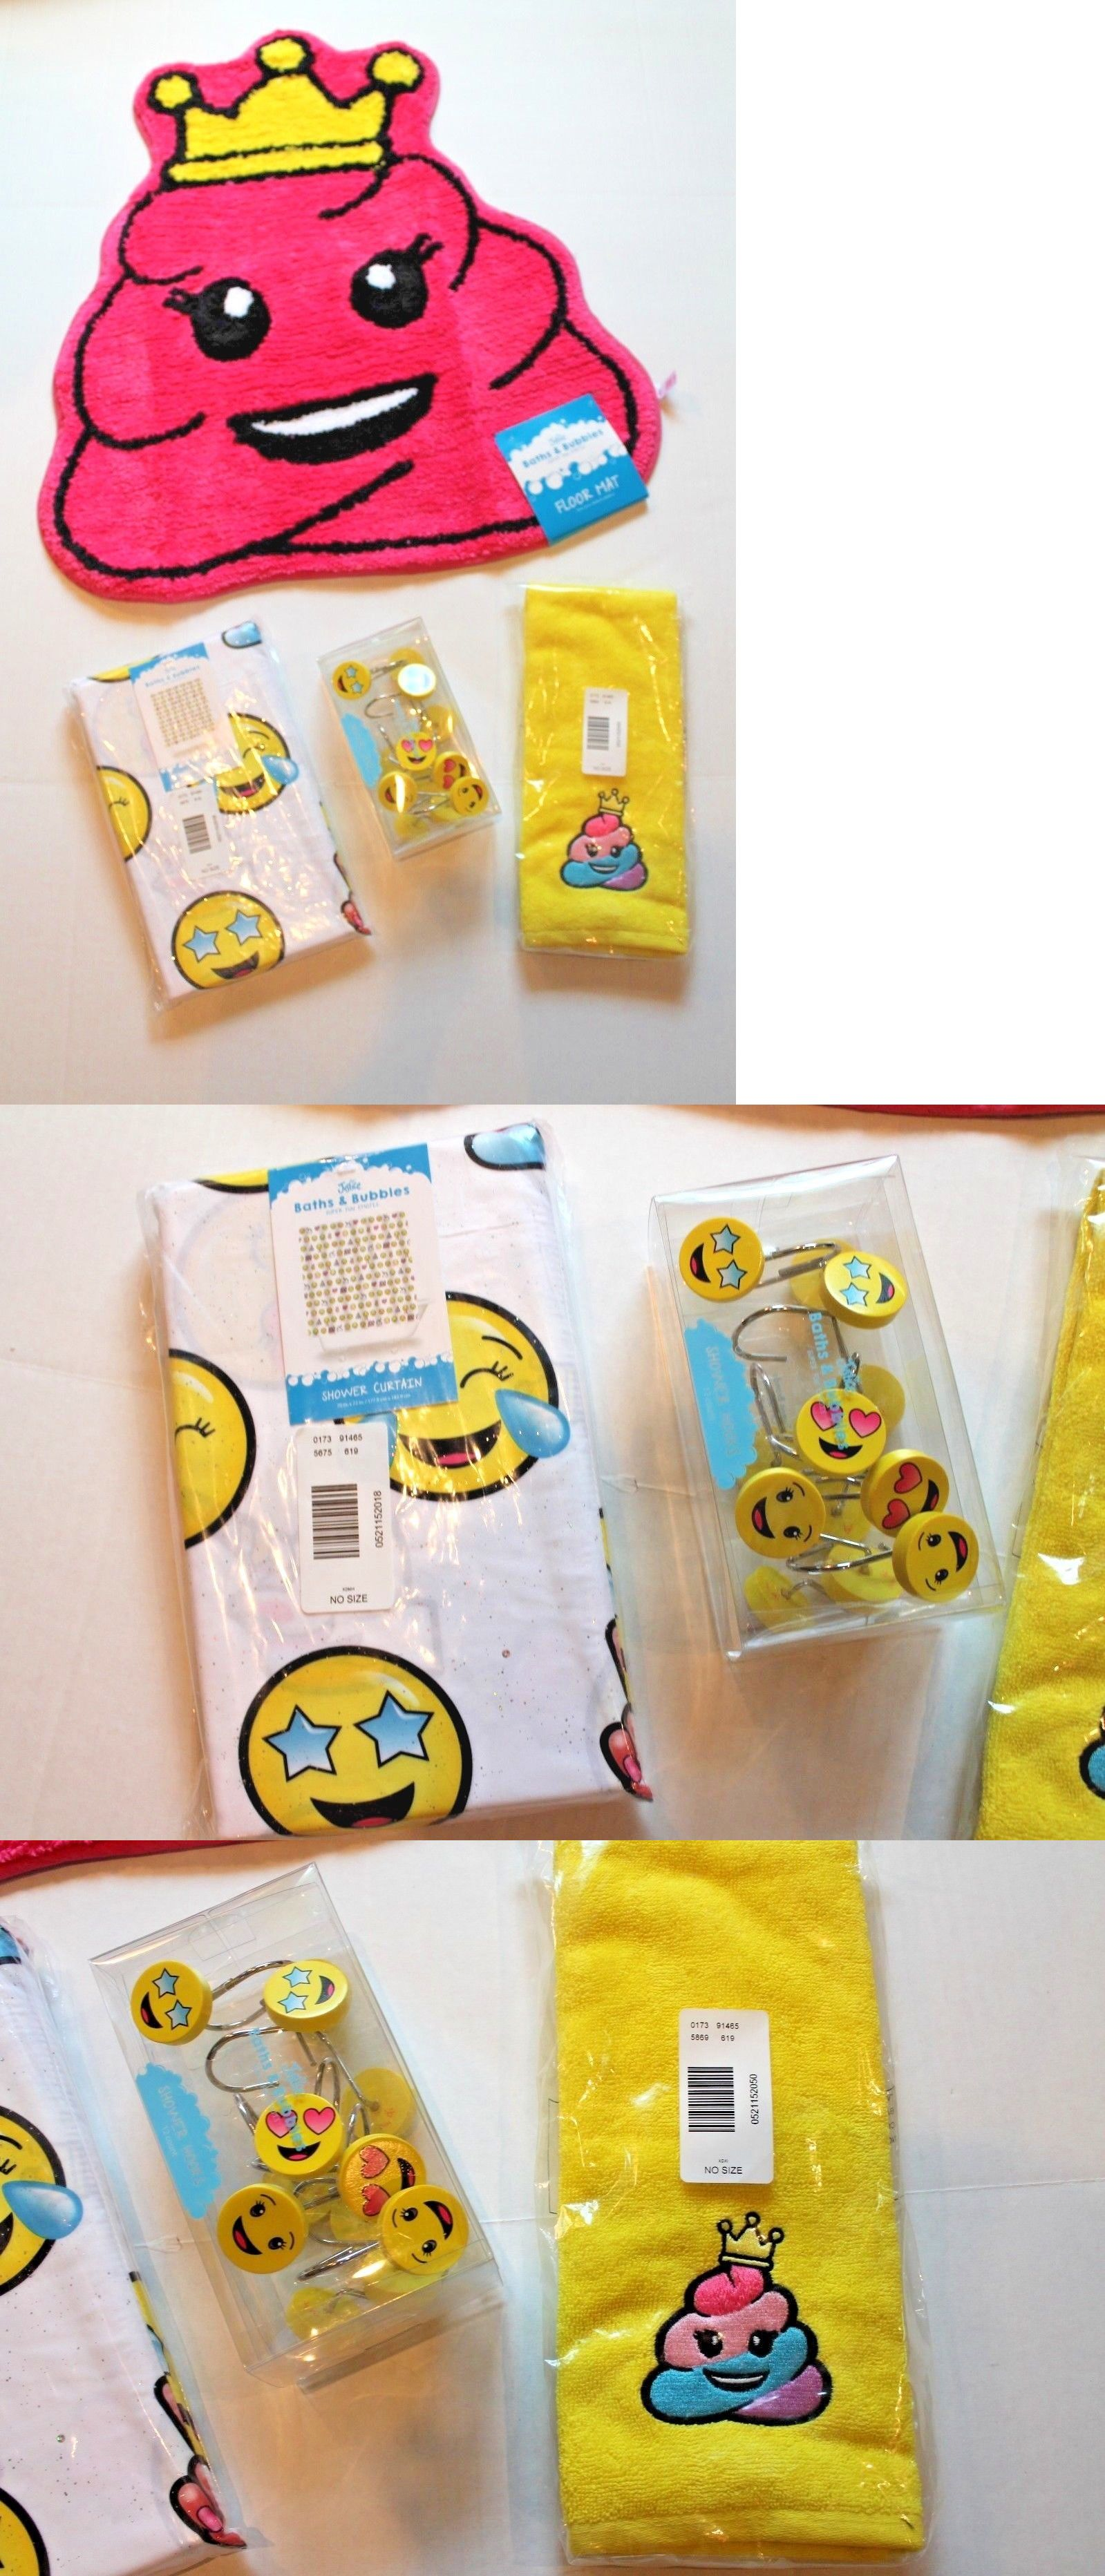 Bath 115624 Justice Emoji Faces Shower Curtain Rug Hand Towel And Emojis Hooks Set BUY IT NOW ONLY 5499 On EBay